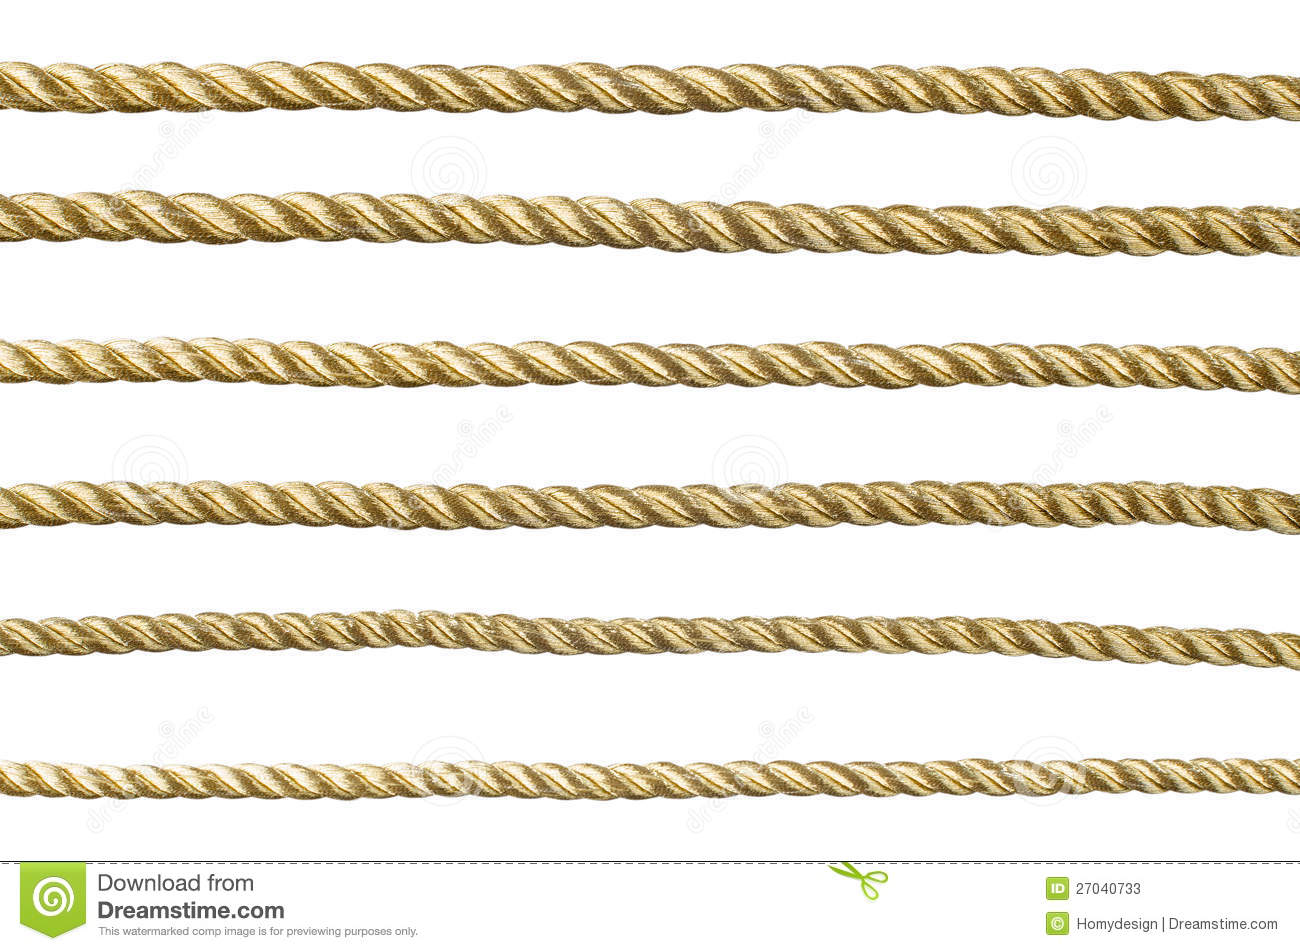 Golden rope isolated on white background for continuous replicate